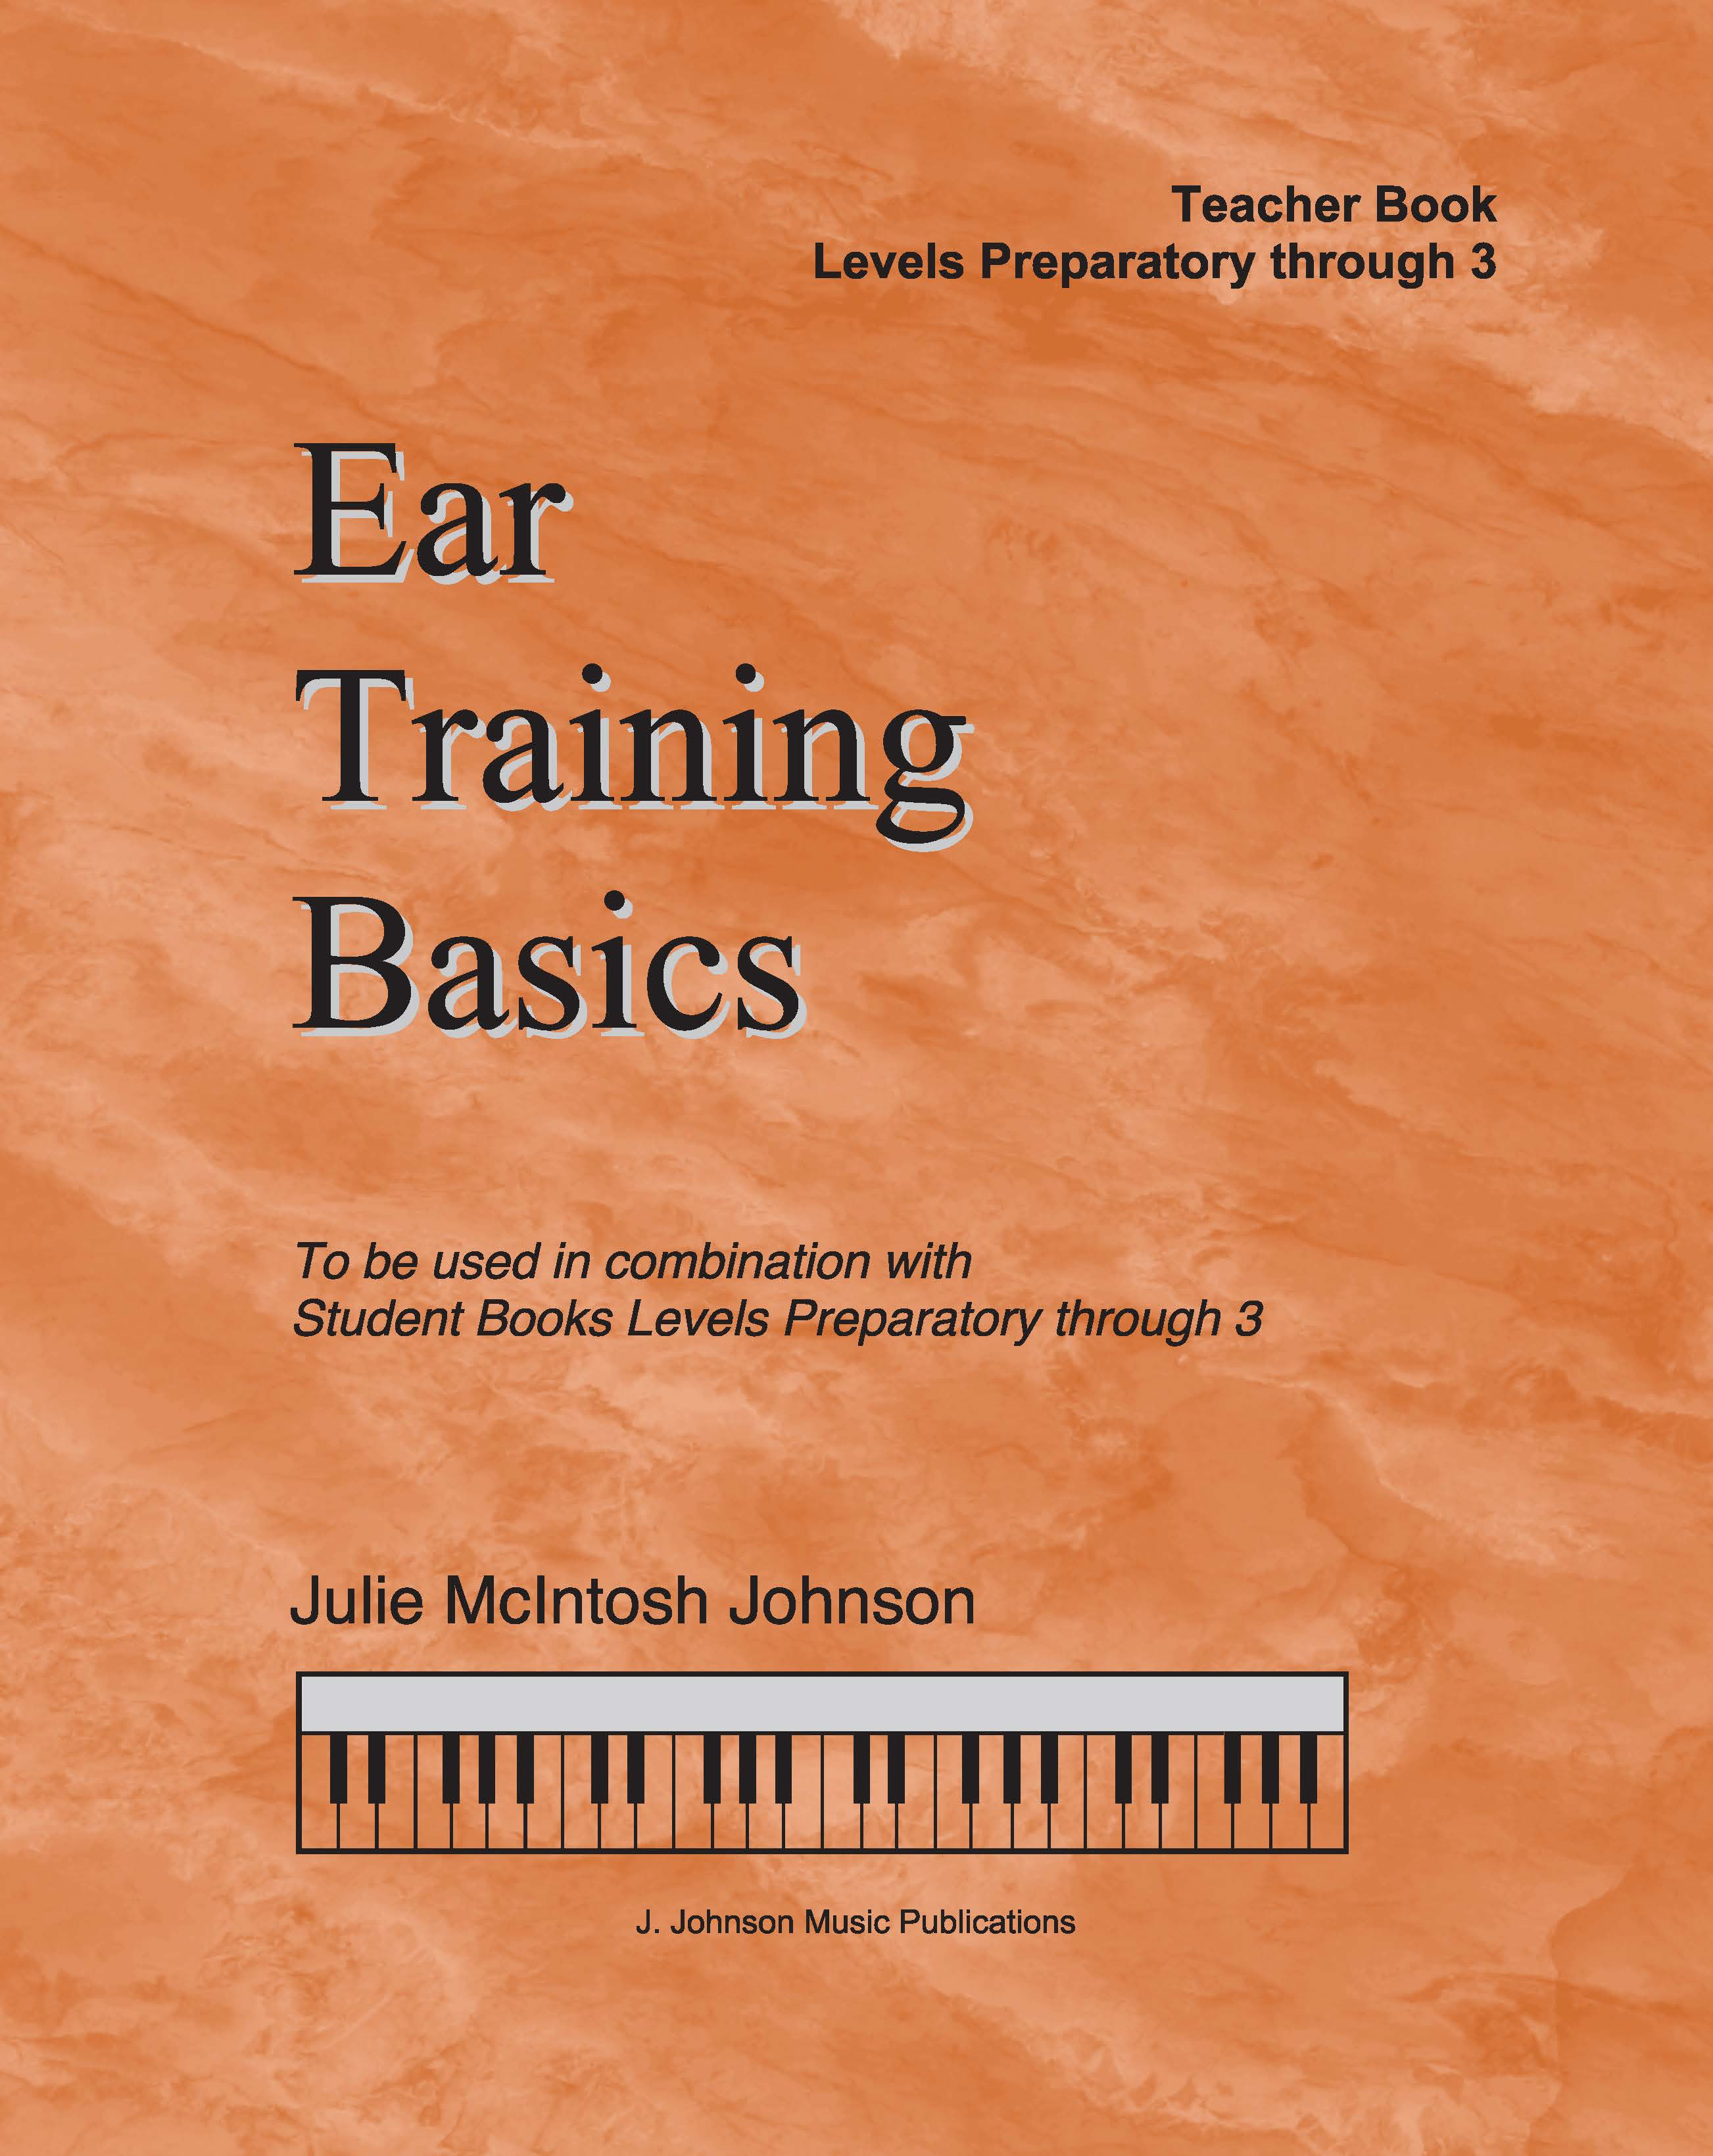 Ear Training Basics Teacher Prep-3